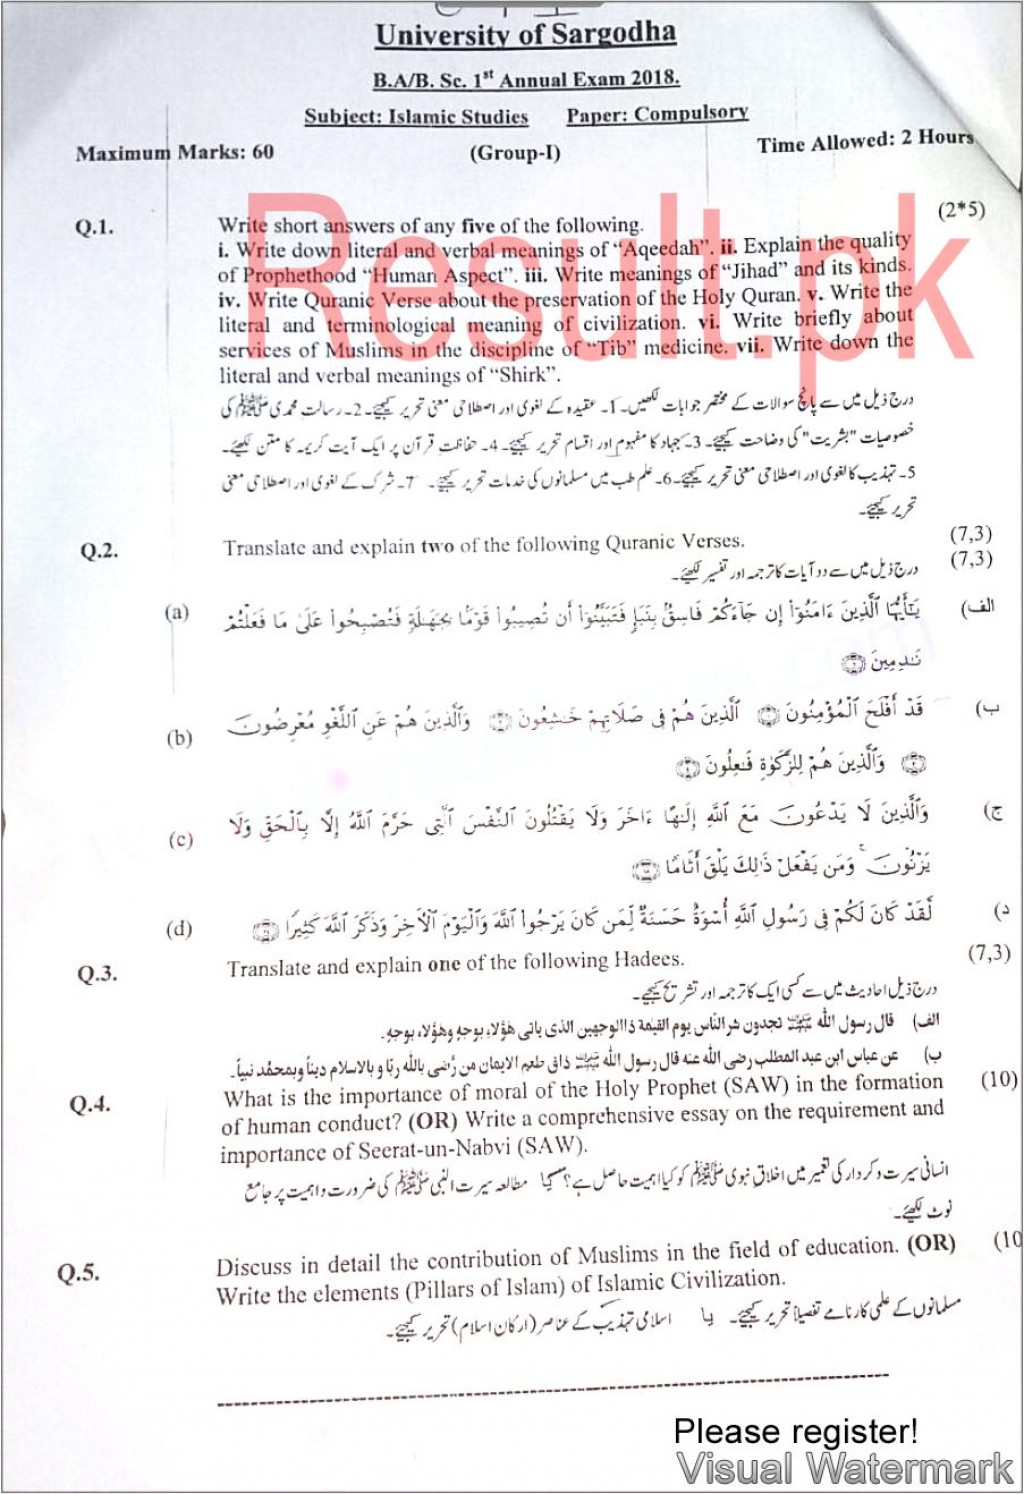 012 Research Paper Past Sargodha University Bsc Islamic Studies Subjective Group Educational Exam Amazing Papers Large